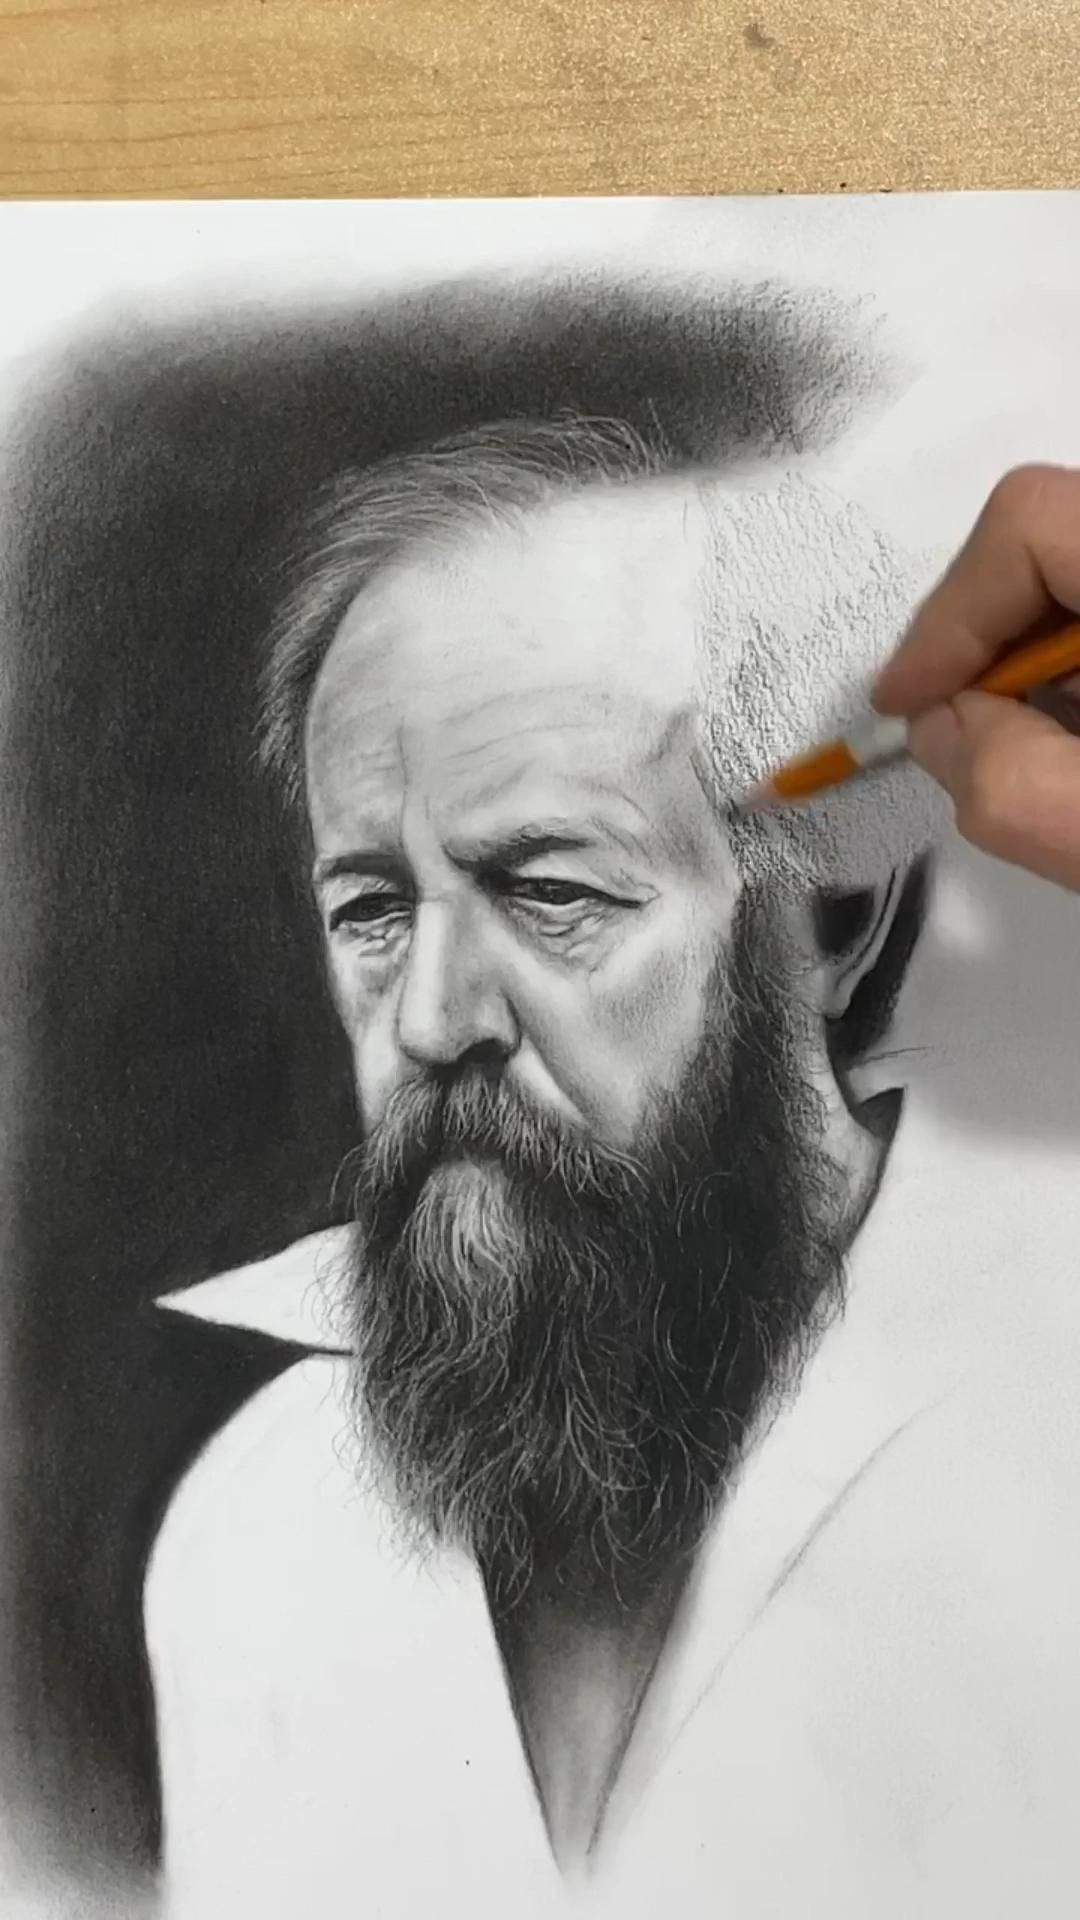 "Realistic charcoal drawing portrait of Alexander Solzhenitsyn sketching by classical realism artist Eric Armusik pencil on paper, 11 x 14"" 2020 #realistic #charcoaldrawing #portraitdrawing #drawing #drawingtips #drawingpeople #sketching #pencilsketch #pencildrawings"